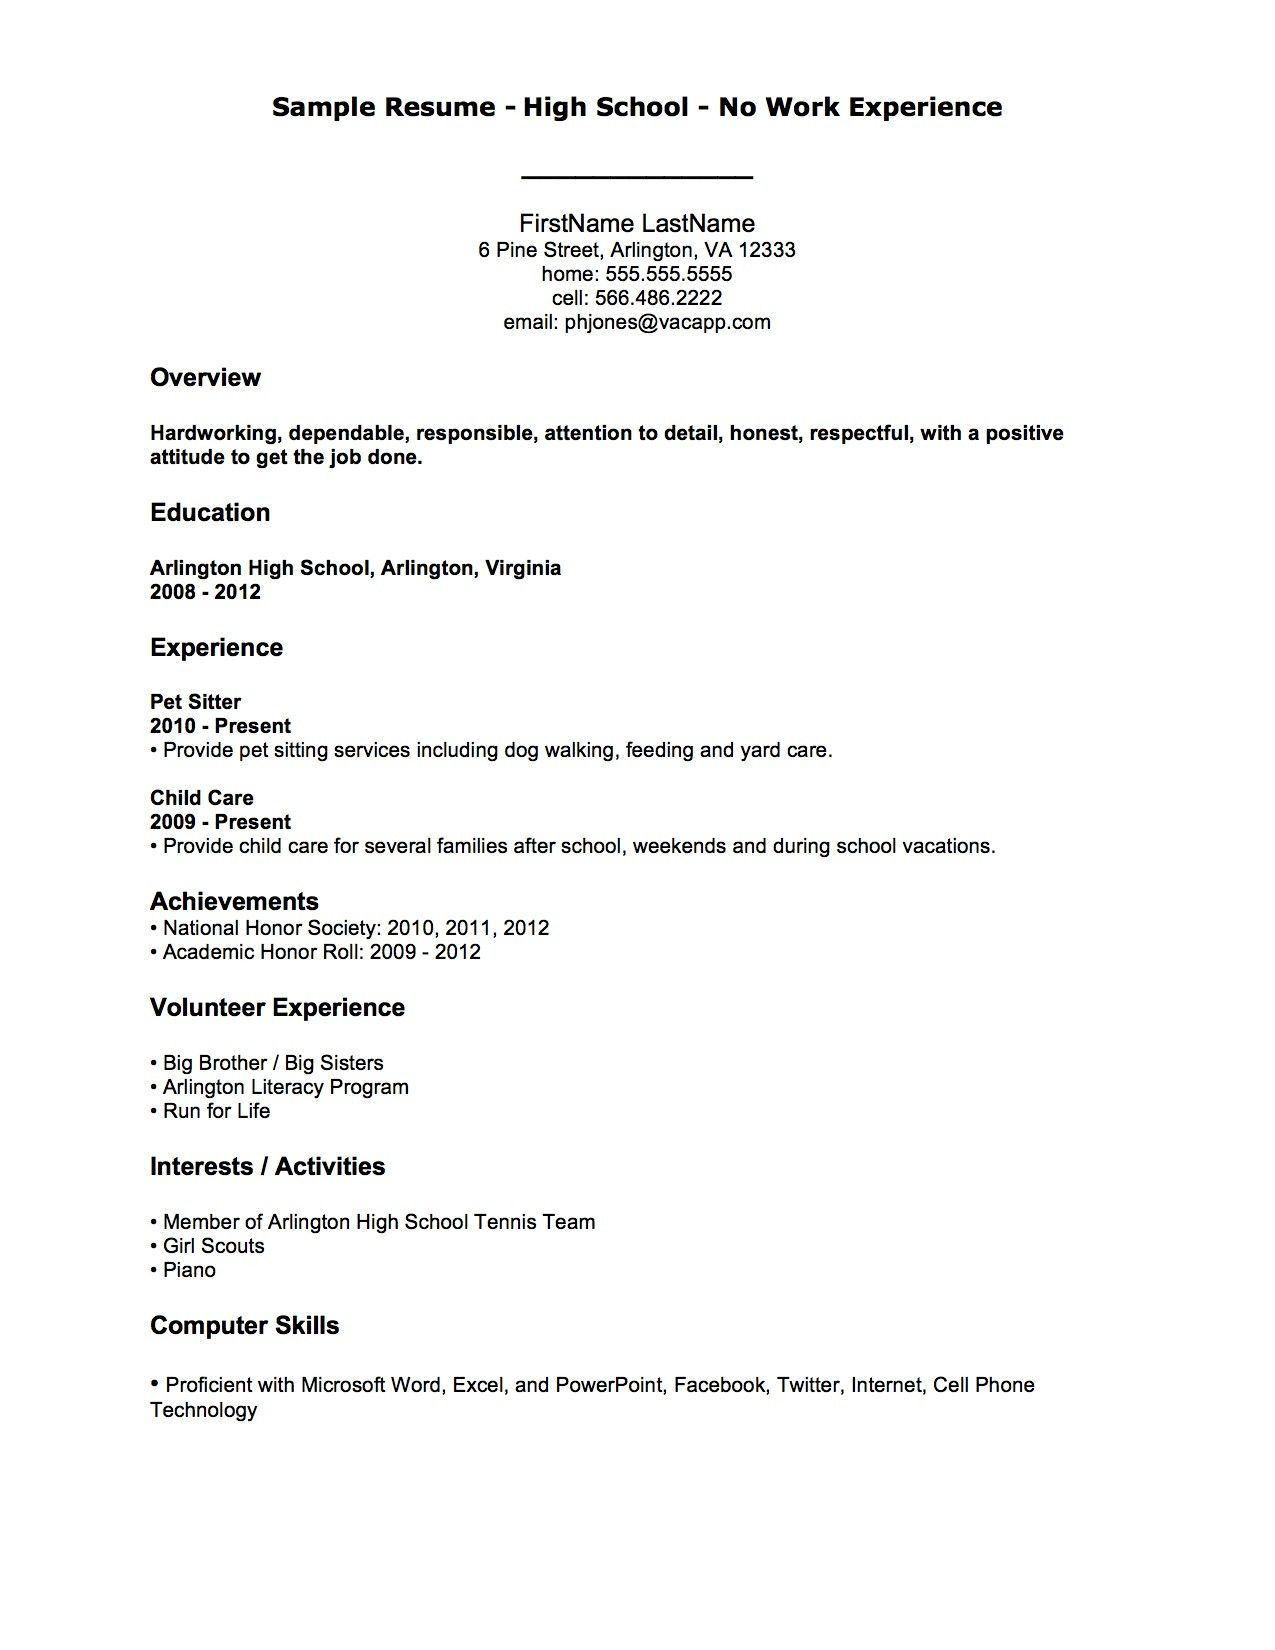 Example Job Resume How To Write A Resume For A Job With No Experience  Google Search